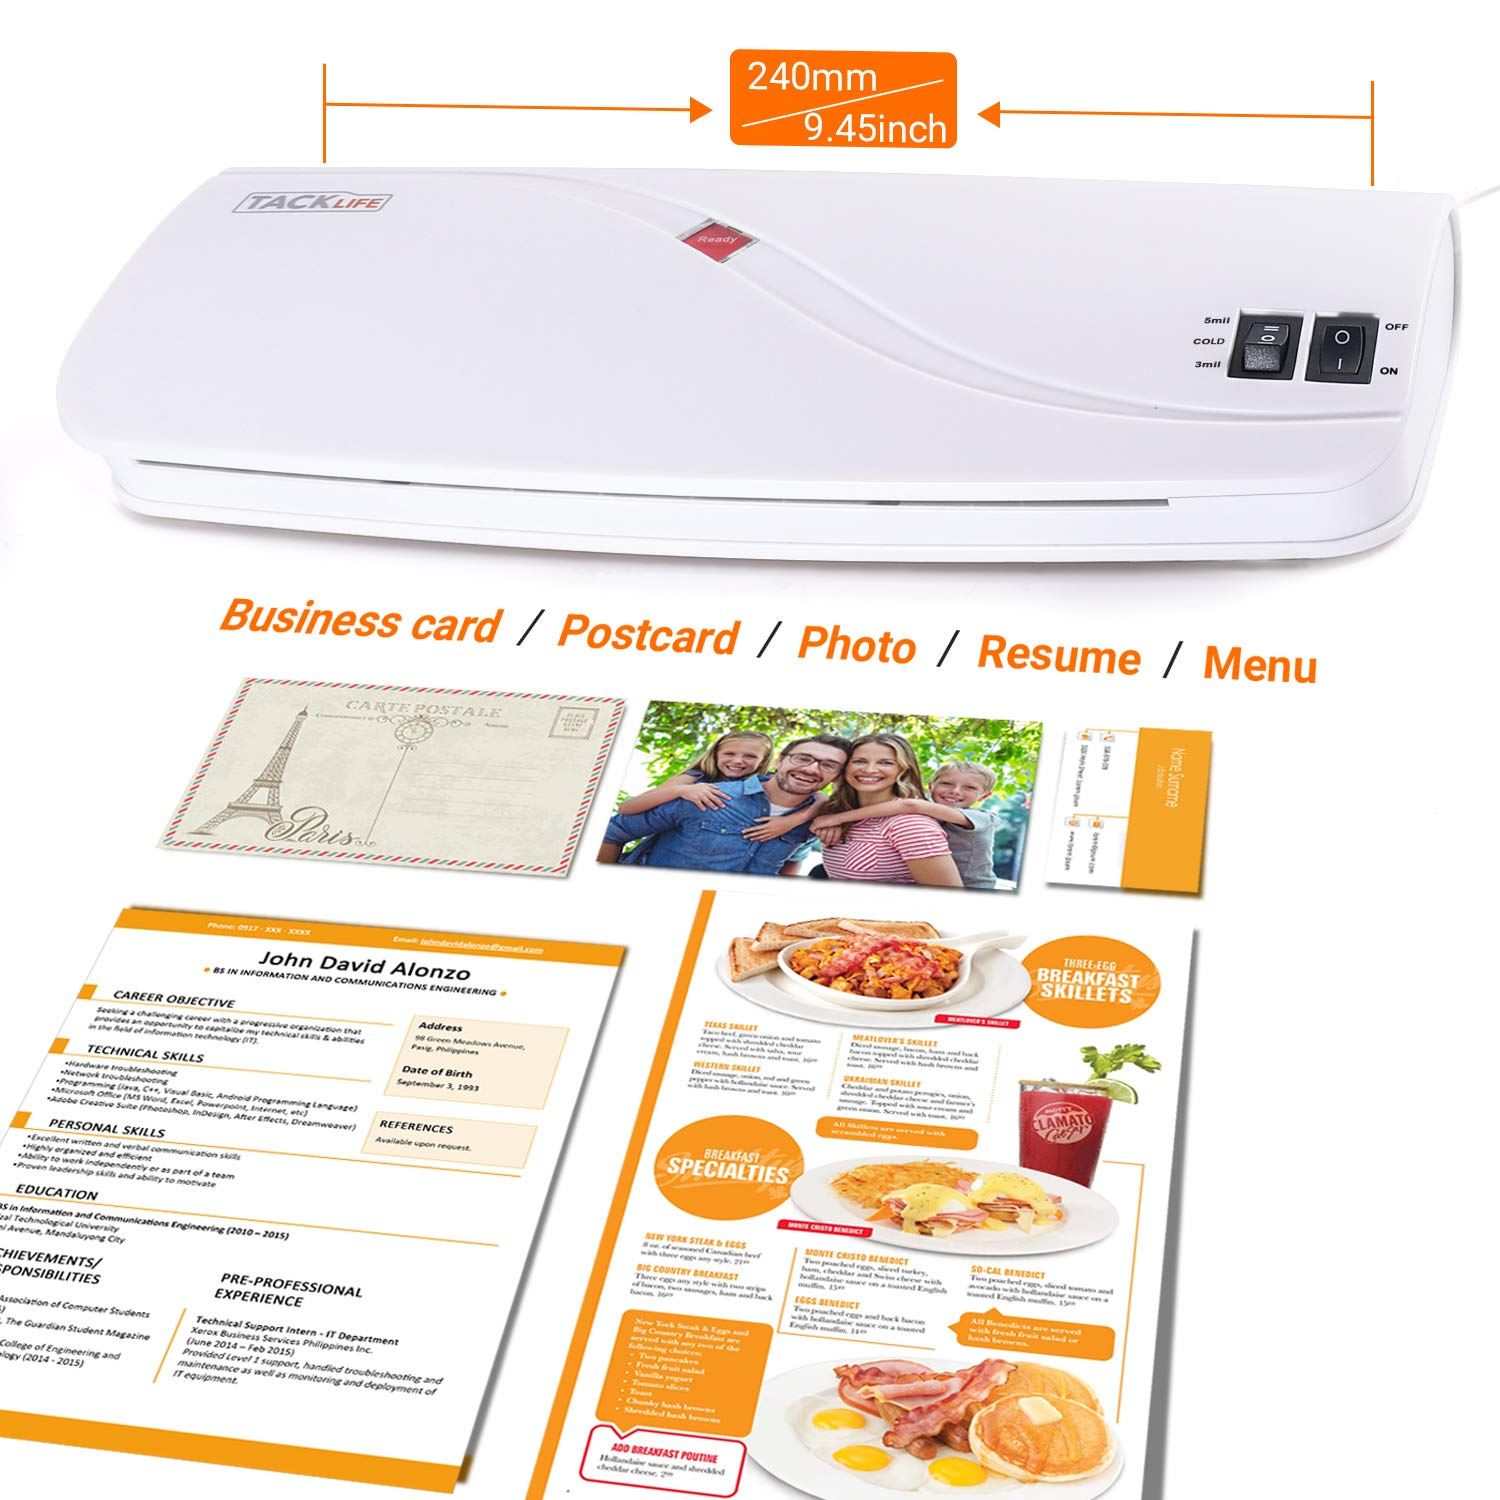 Hot /& Cold Laminating Machine with Two Heat Settings Thermal Laminator 3 Min Fast Warm-up for Office//School//Home 4A4, 3A5, 3Card Films 10 Laminator Pouches ABS Button Included MTL01